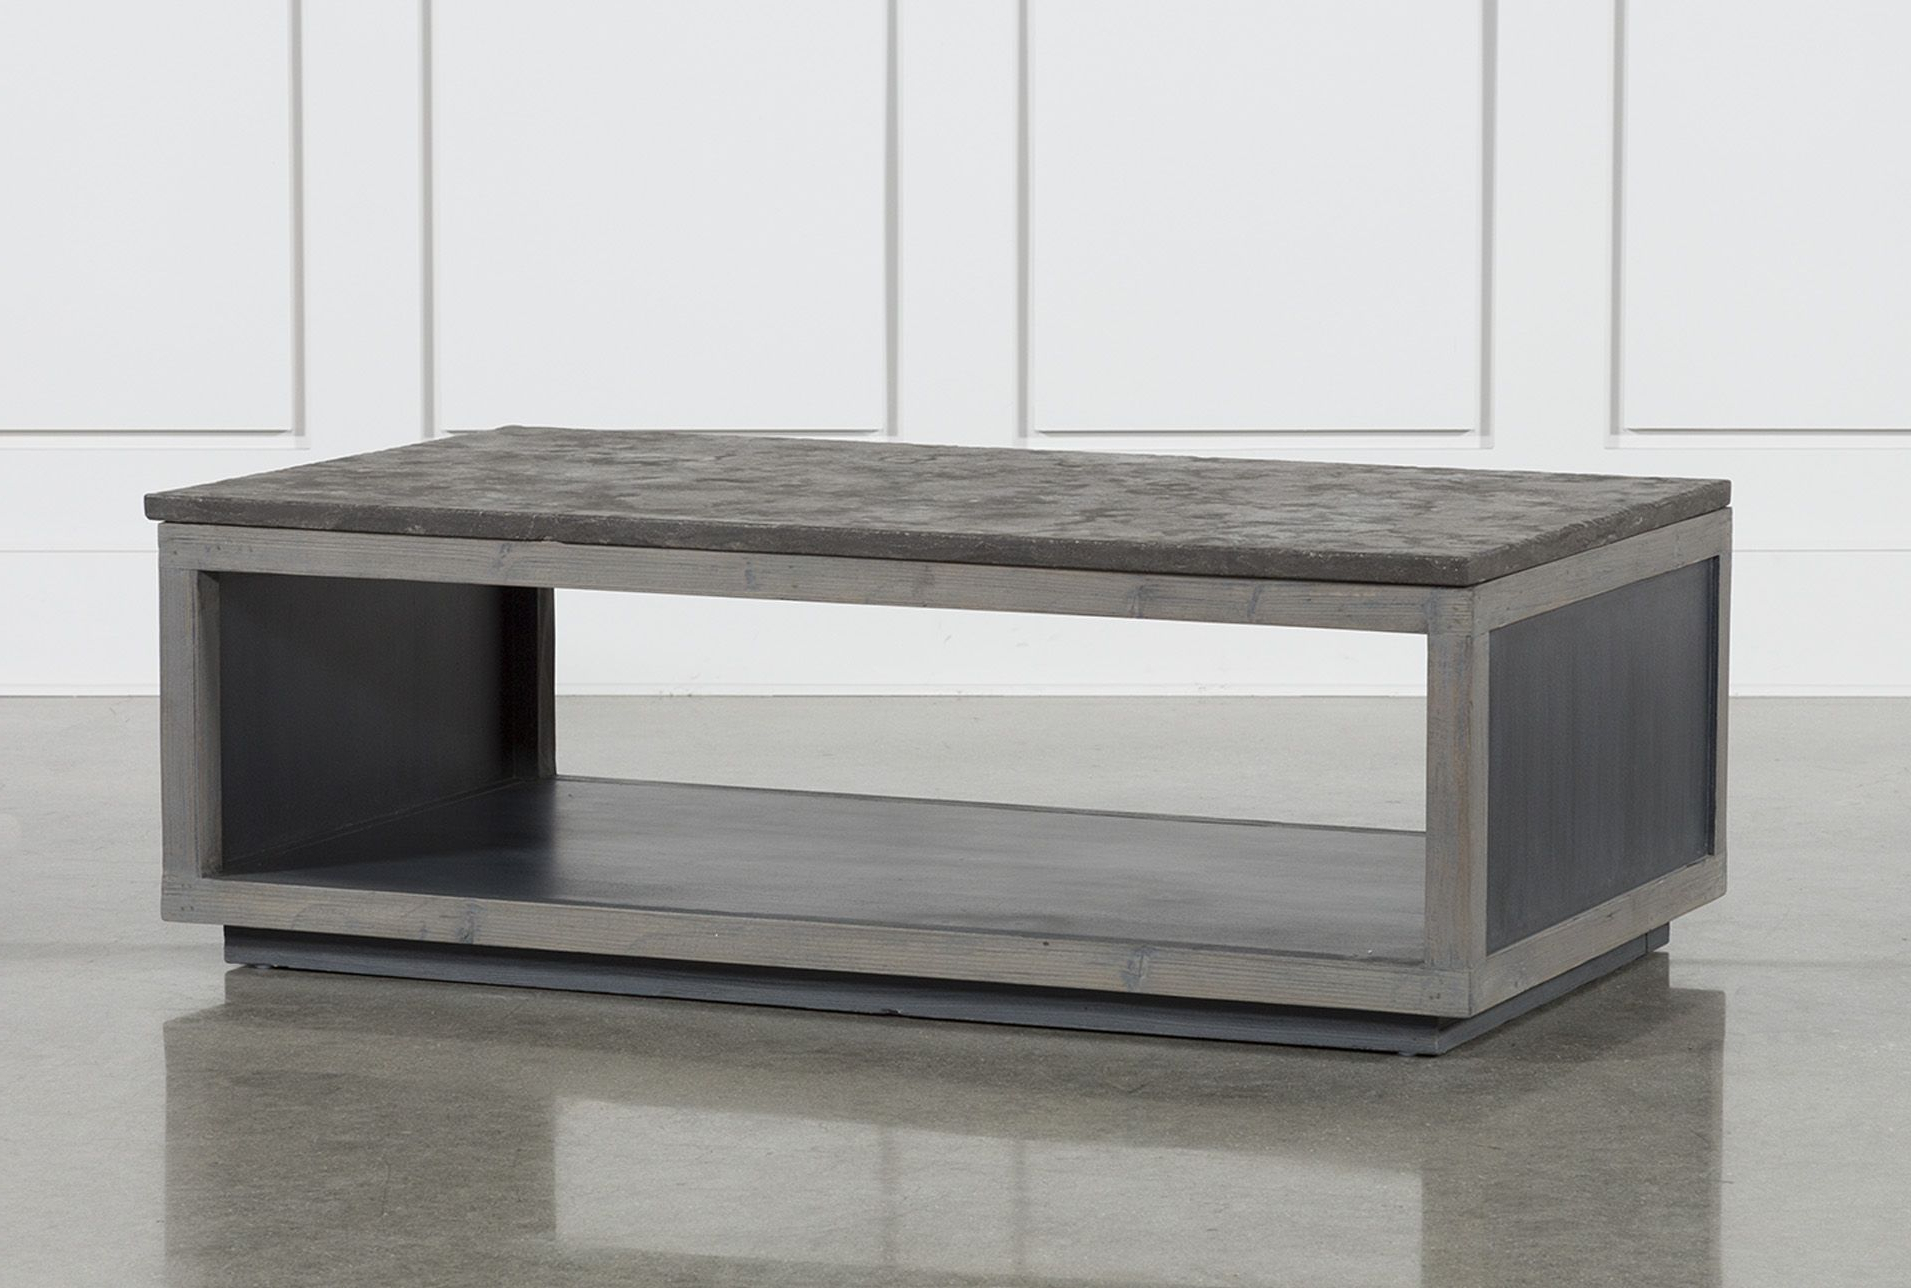 Stone Coffee Table And Within 2019 Moraga Barrel Coffee Tables (View 9 of 20)